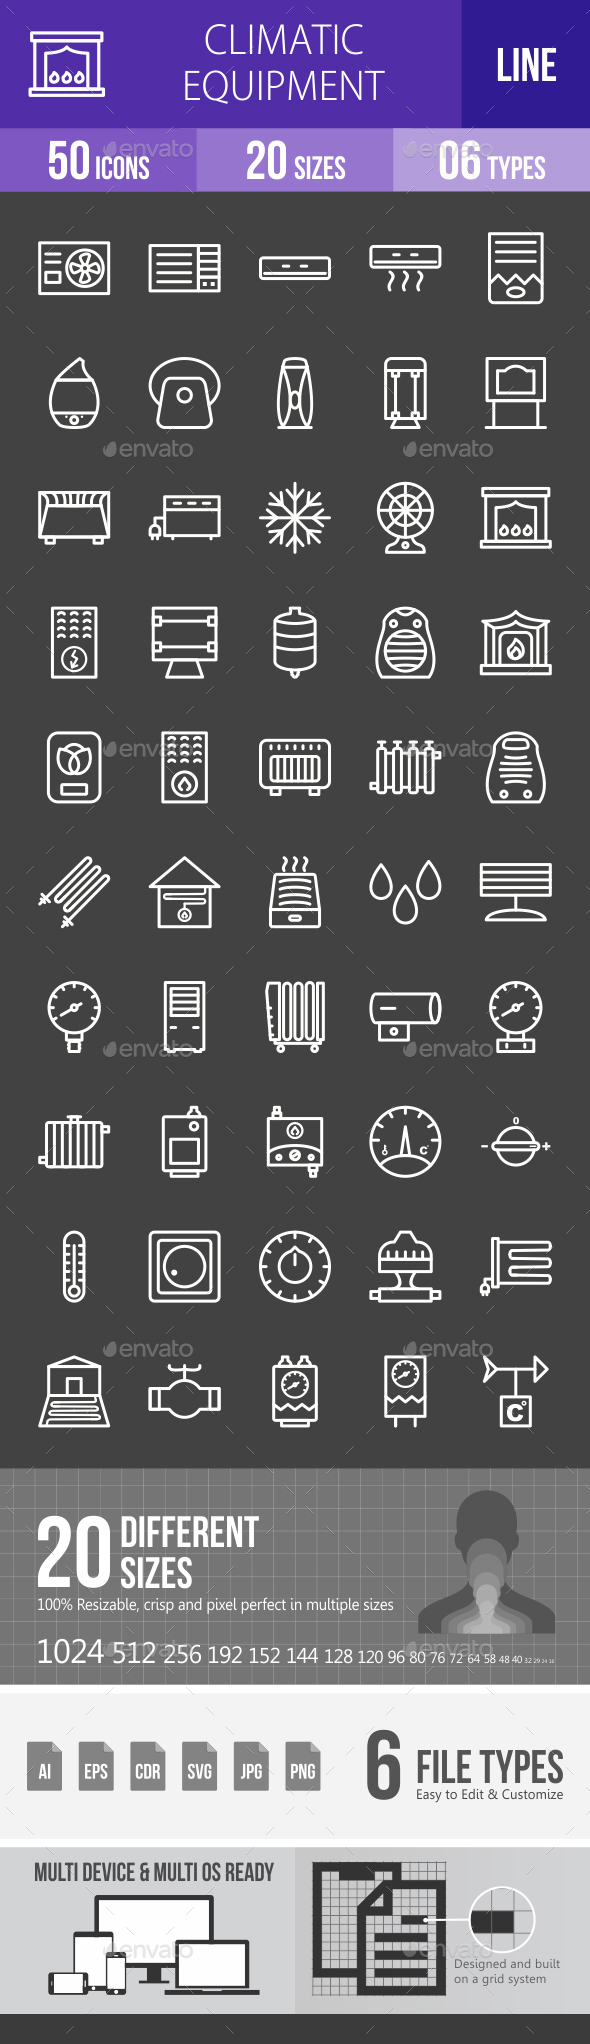 Climatic Equipment Line Inverted Icons - Icons